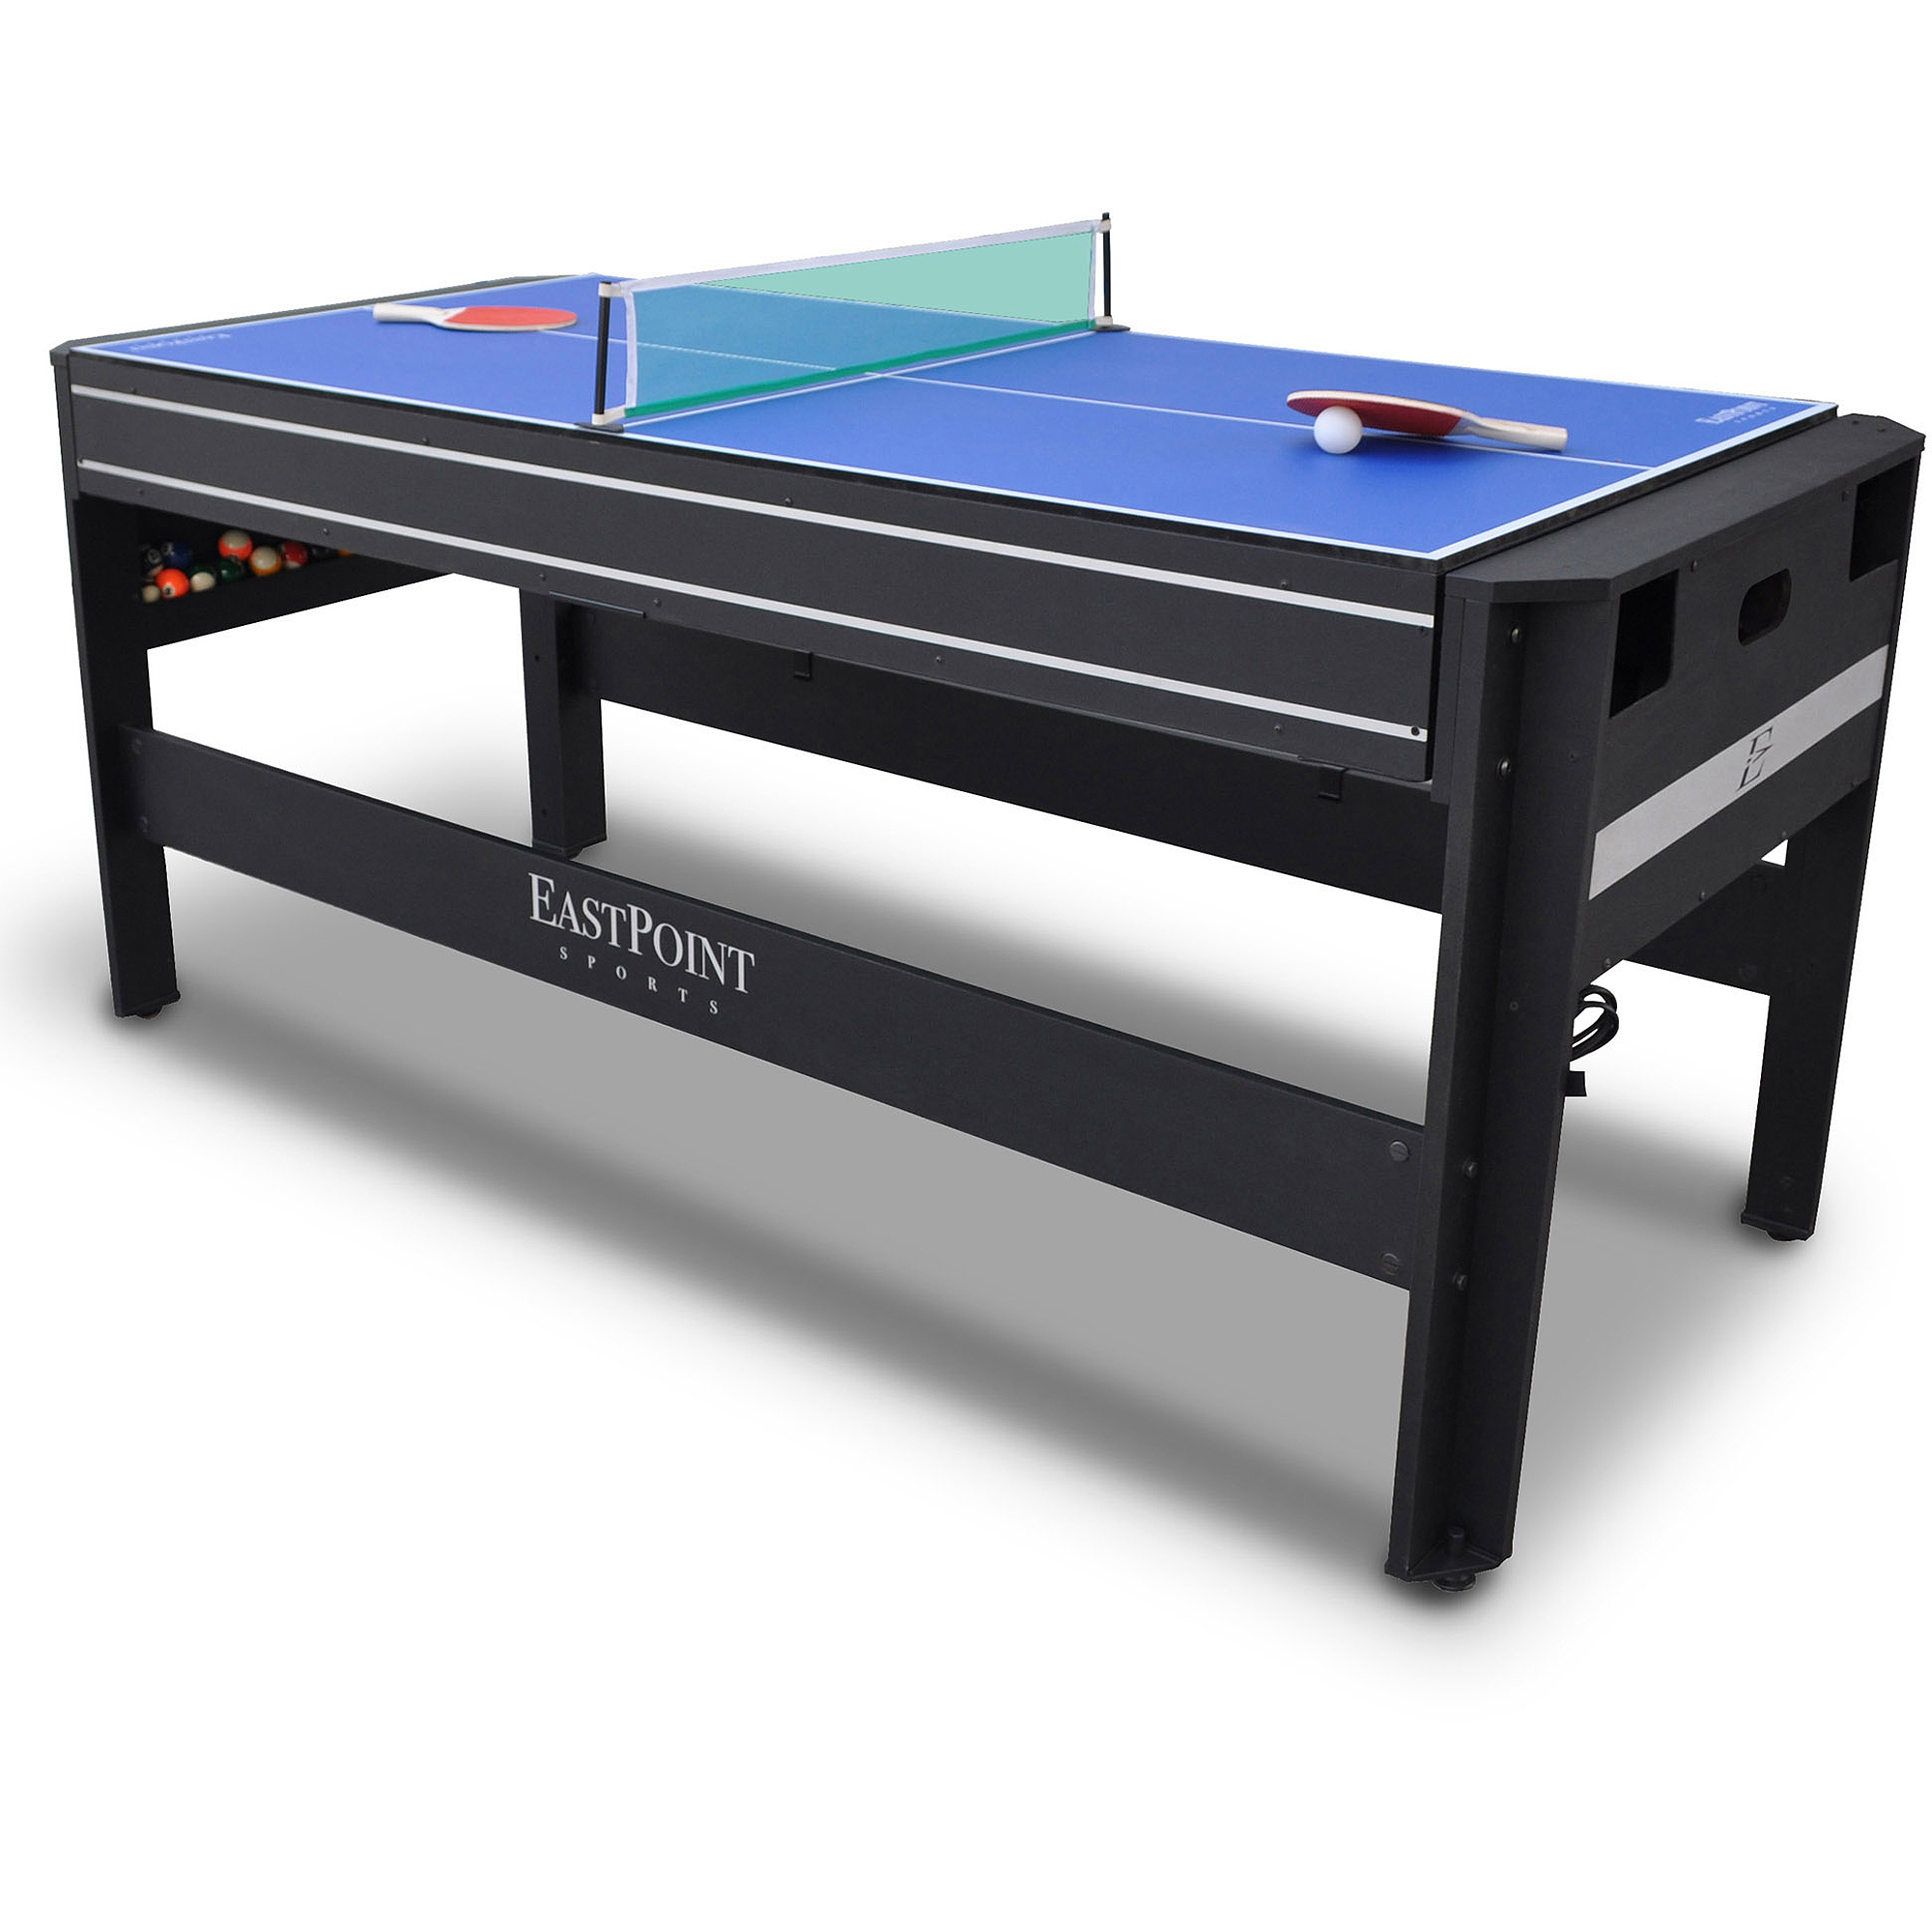 3 in 1 ping pong pool air hockey table - 3 In 1 Ping Pong Pool Air Hockey Table 6